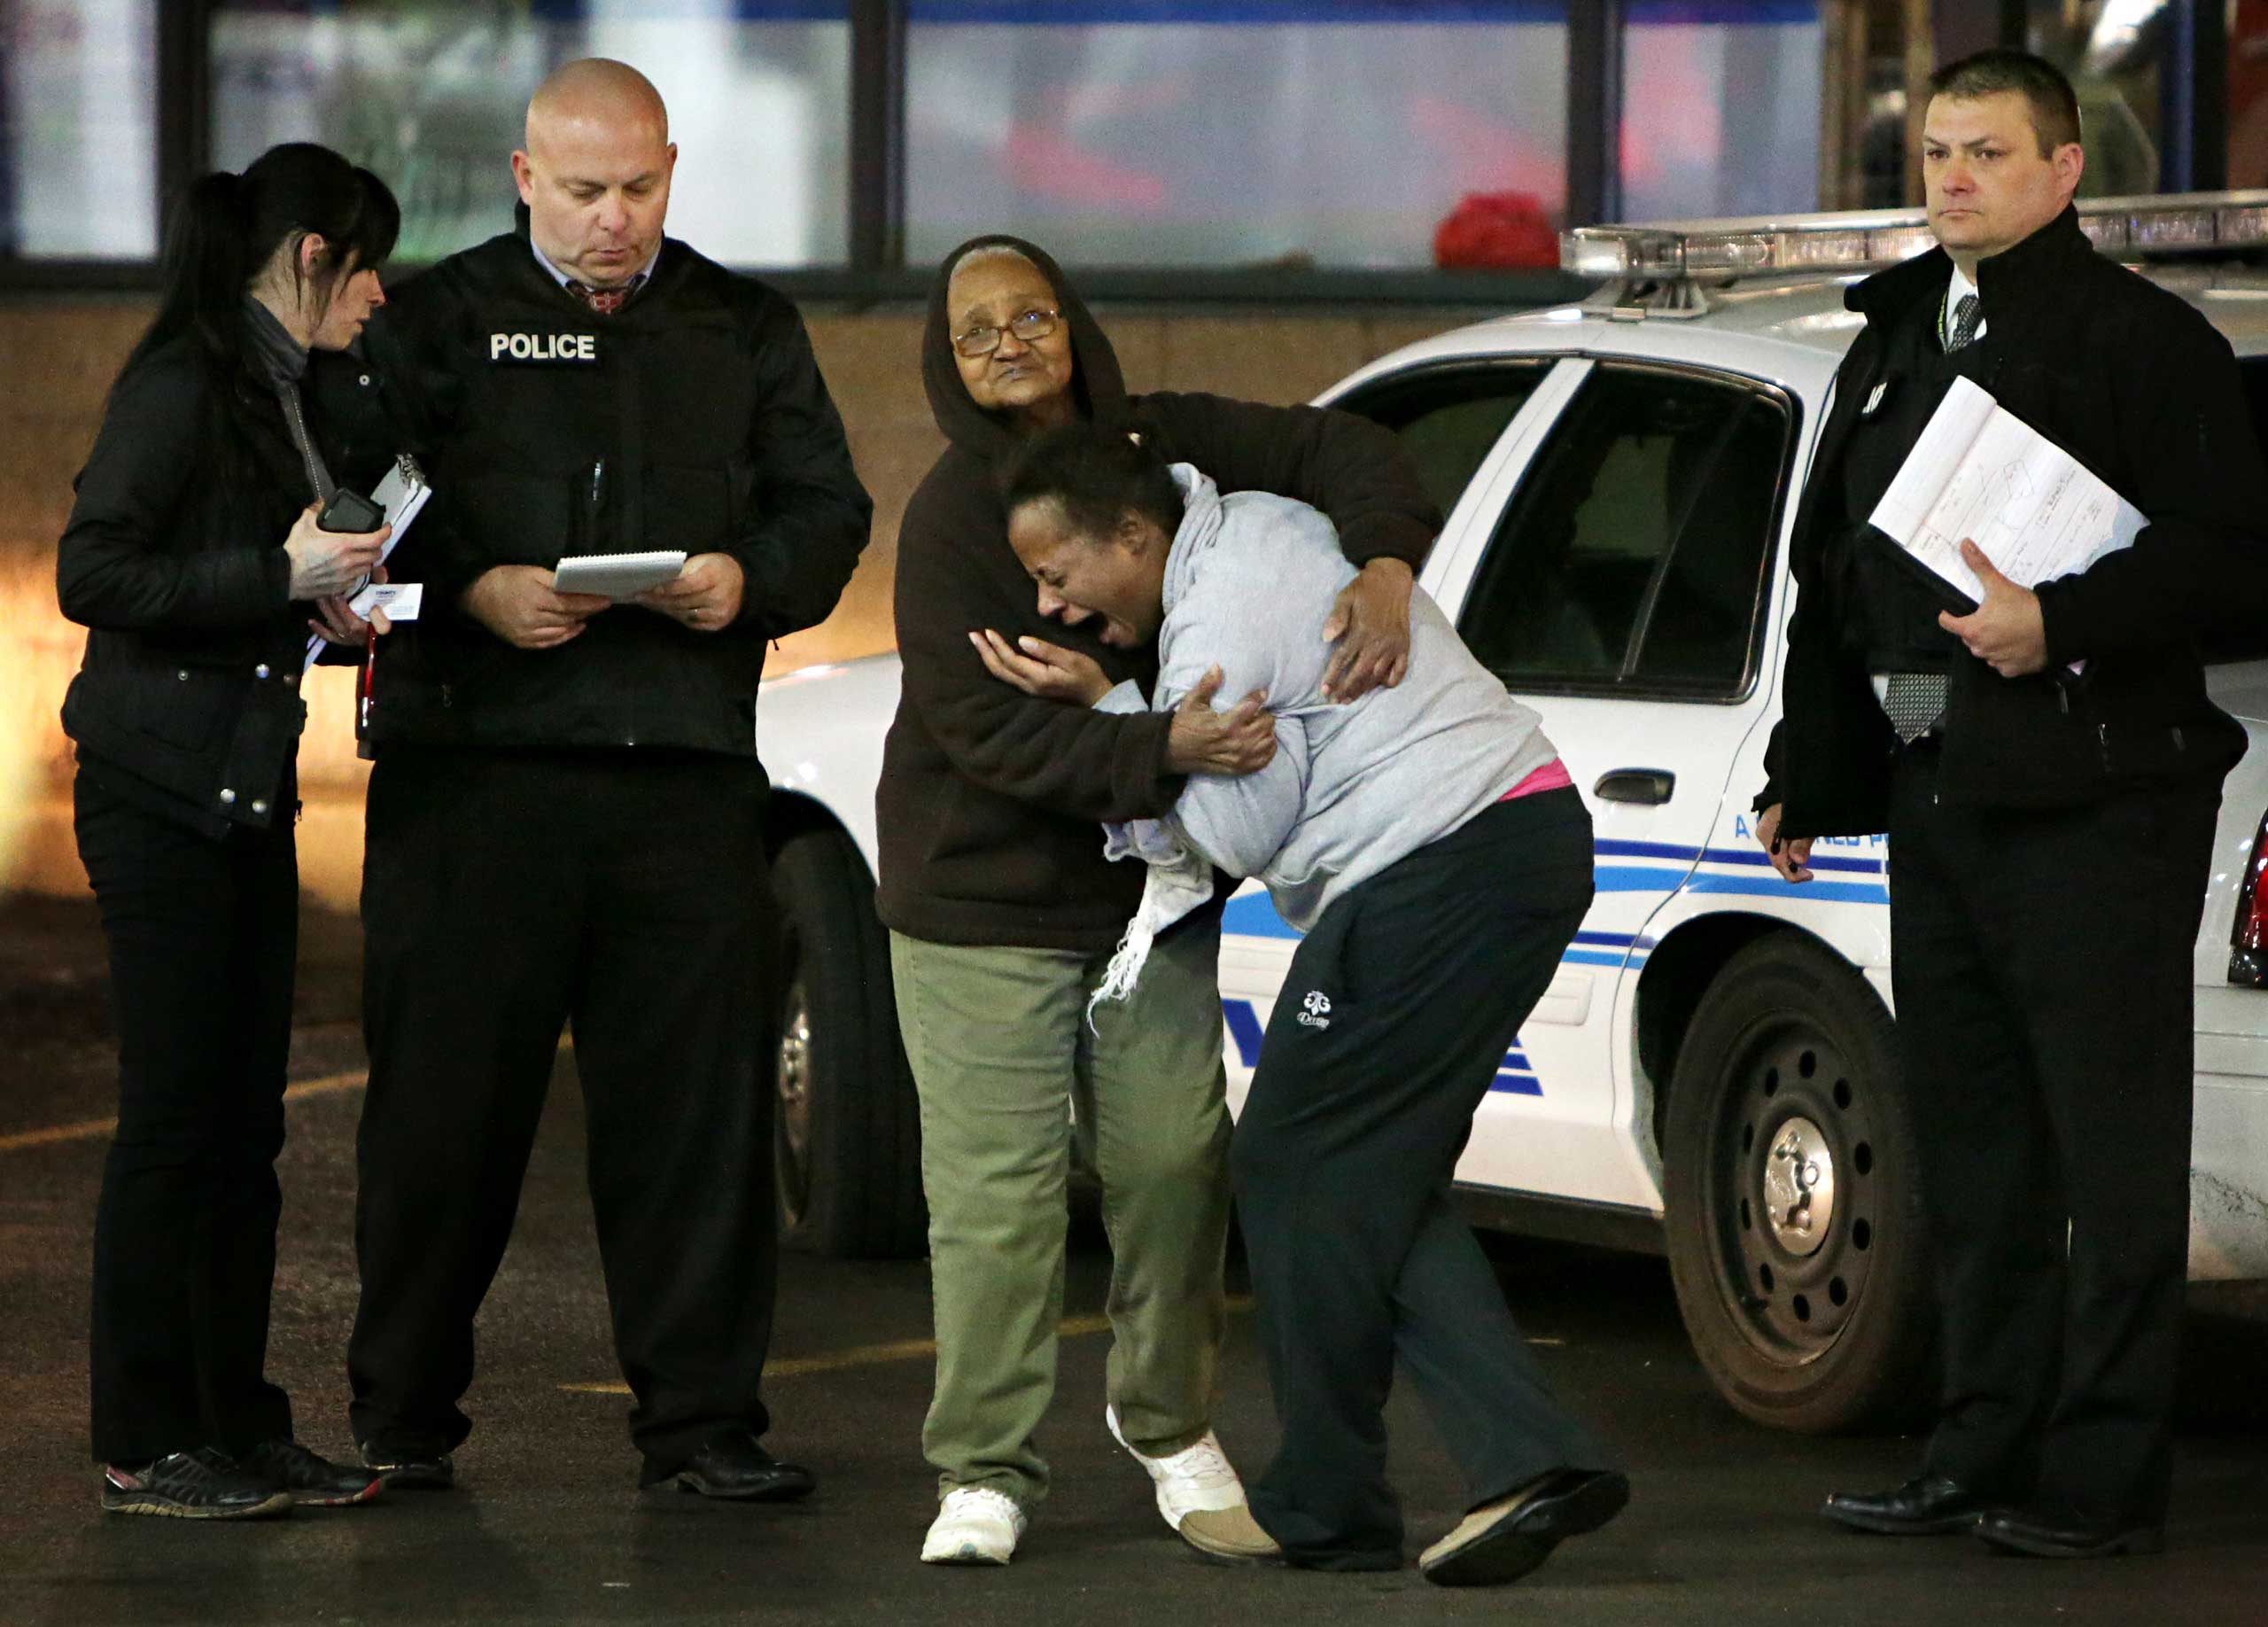 Toni Martin cries out on Dec. 24, 2014 as she talks to police at the scene where she says her son was fatally shot at a gas station in Berkeley, Mo.